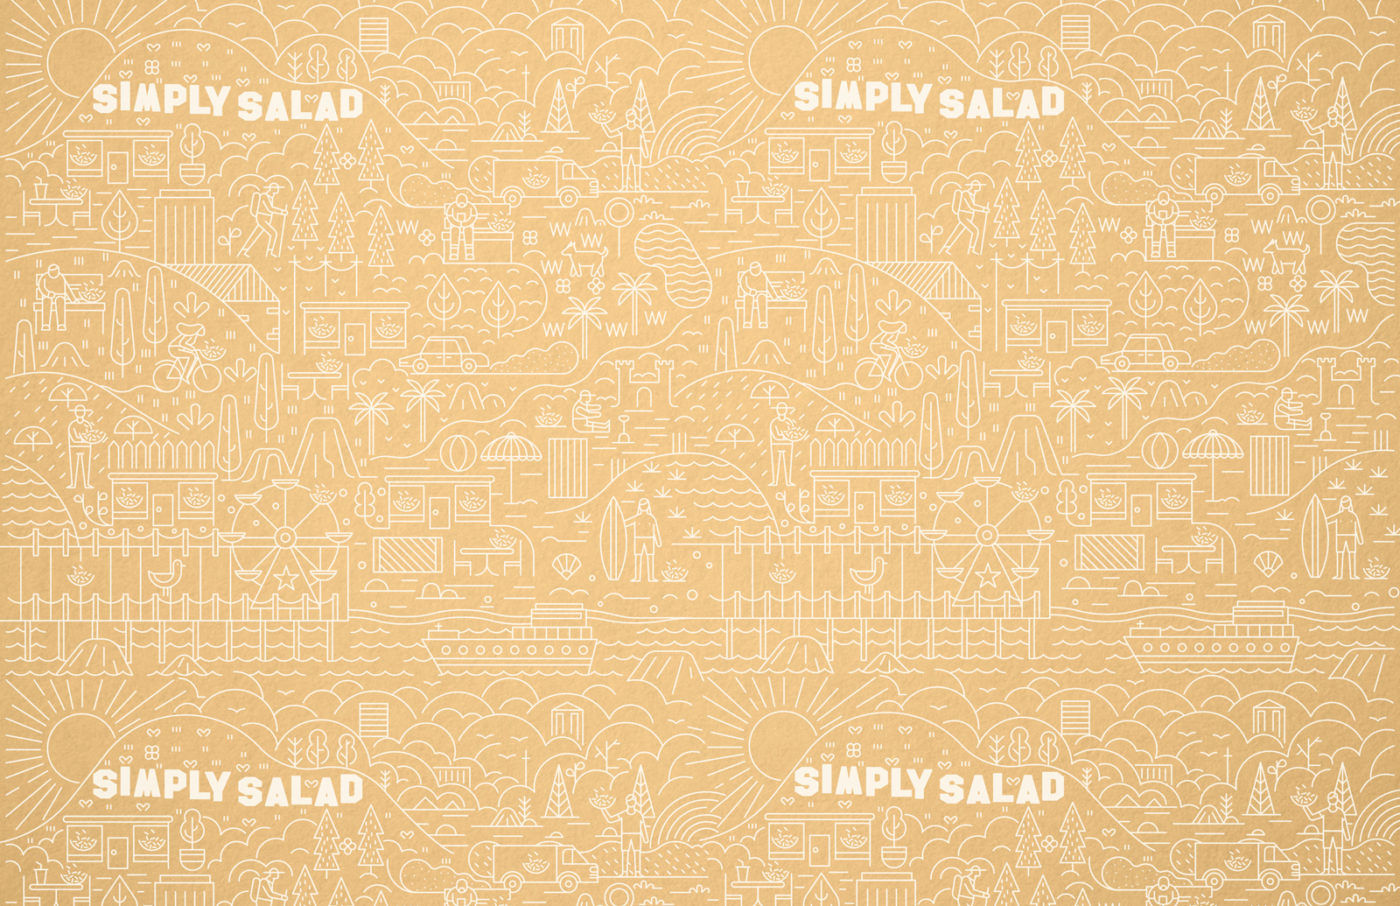 simplysalad_wrap14x14_combowhitewfill